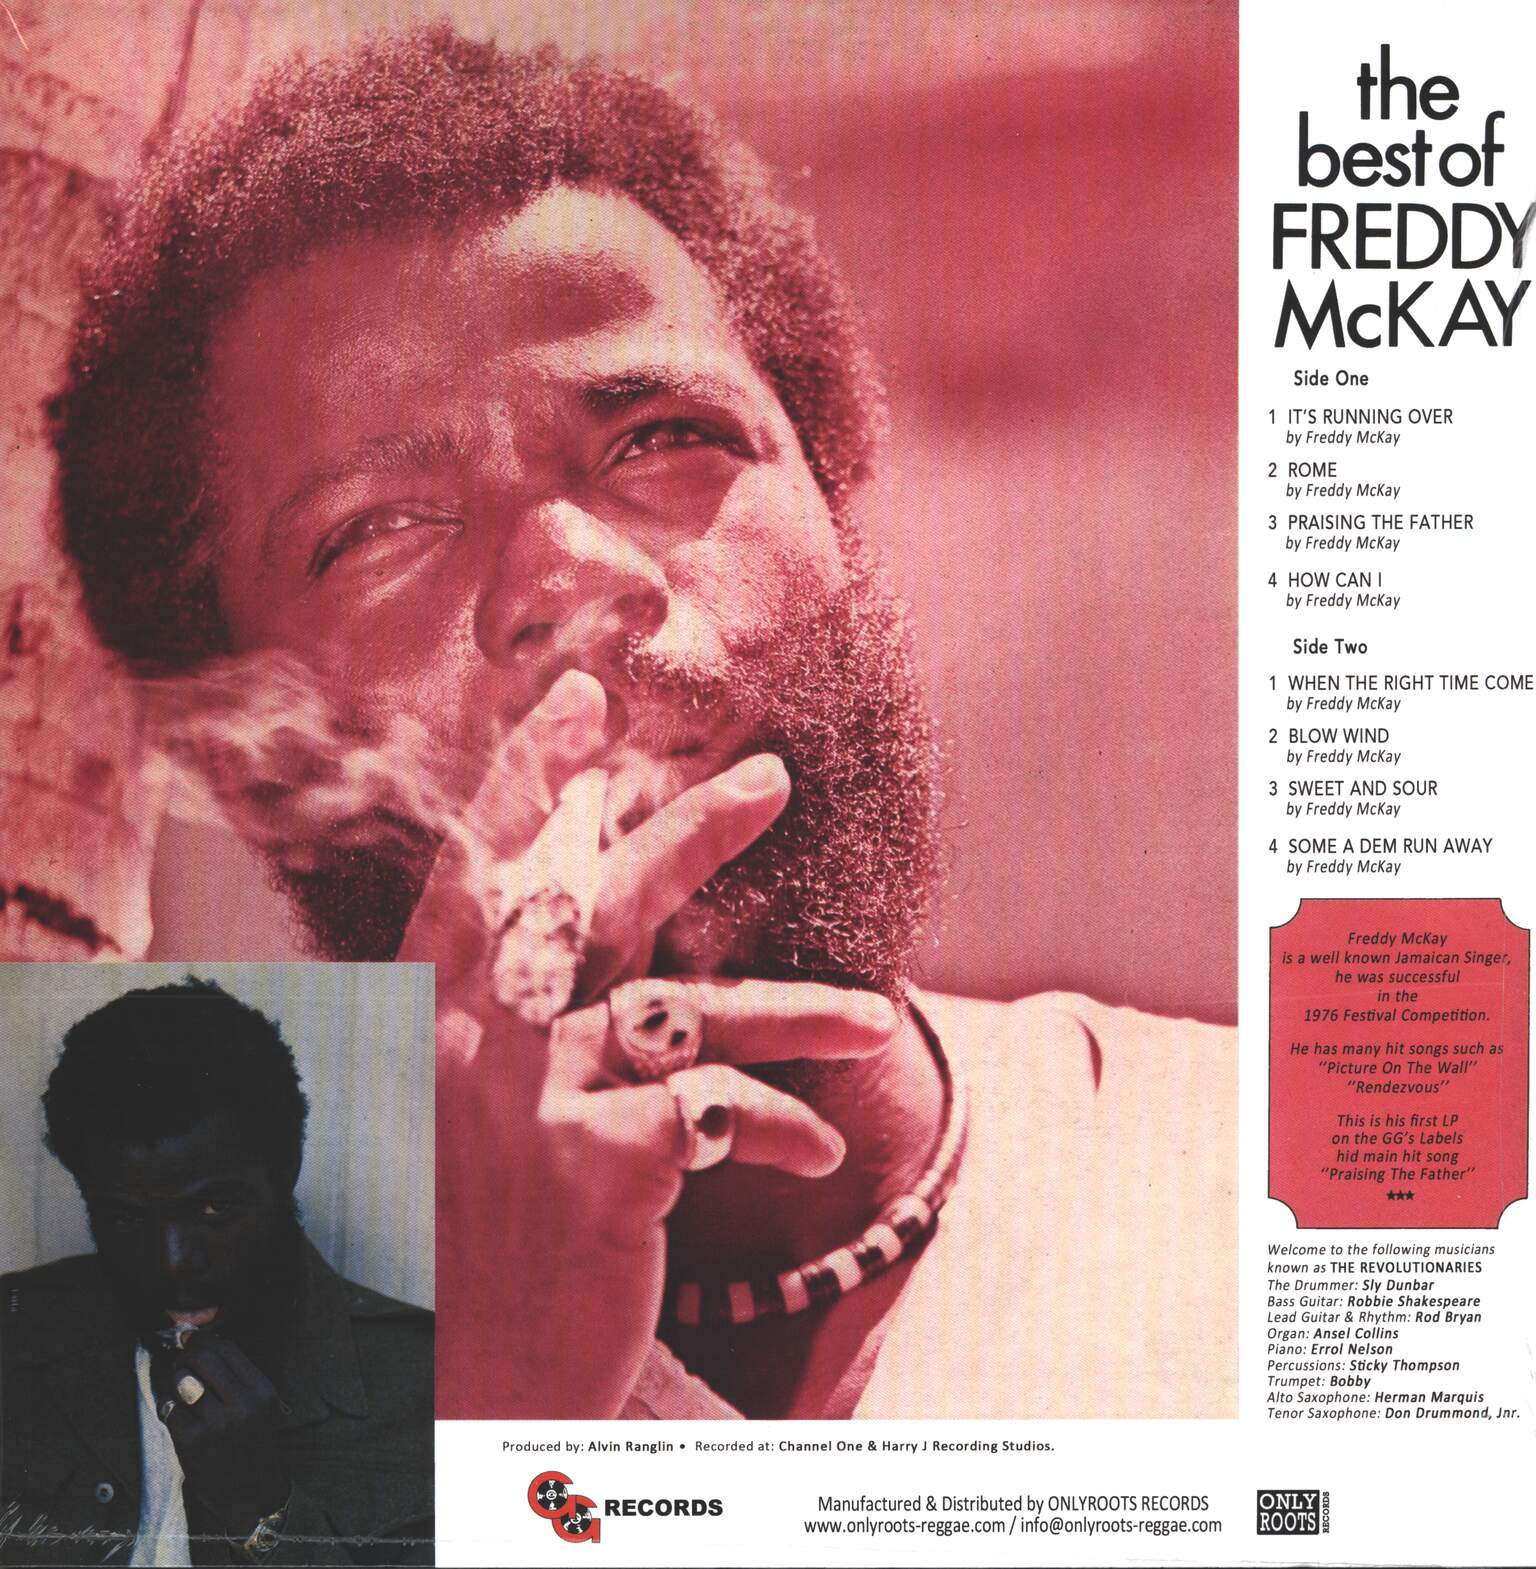 Freddie McKay: The Best Of Freddy McKay, 1×LP (Vinyl)